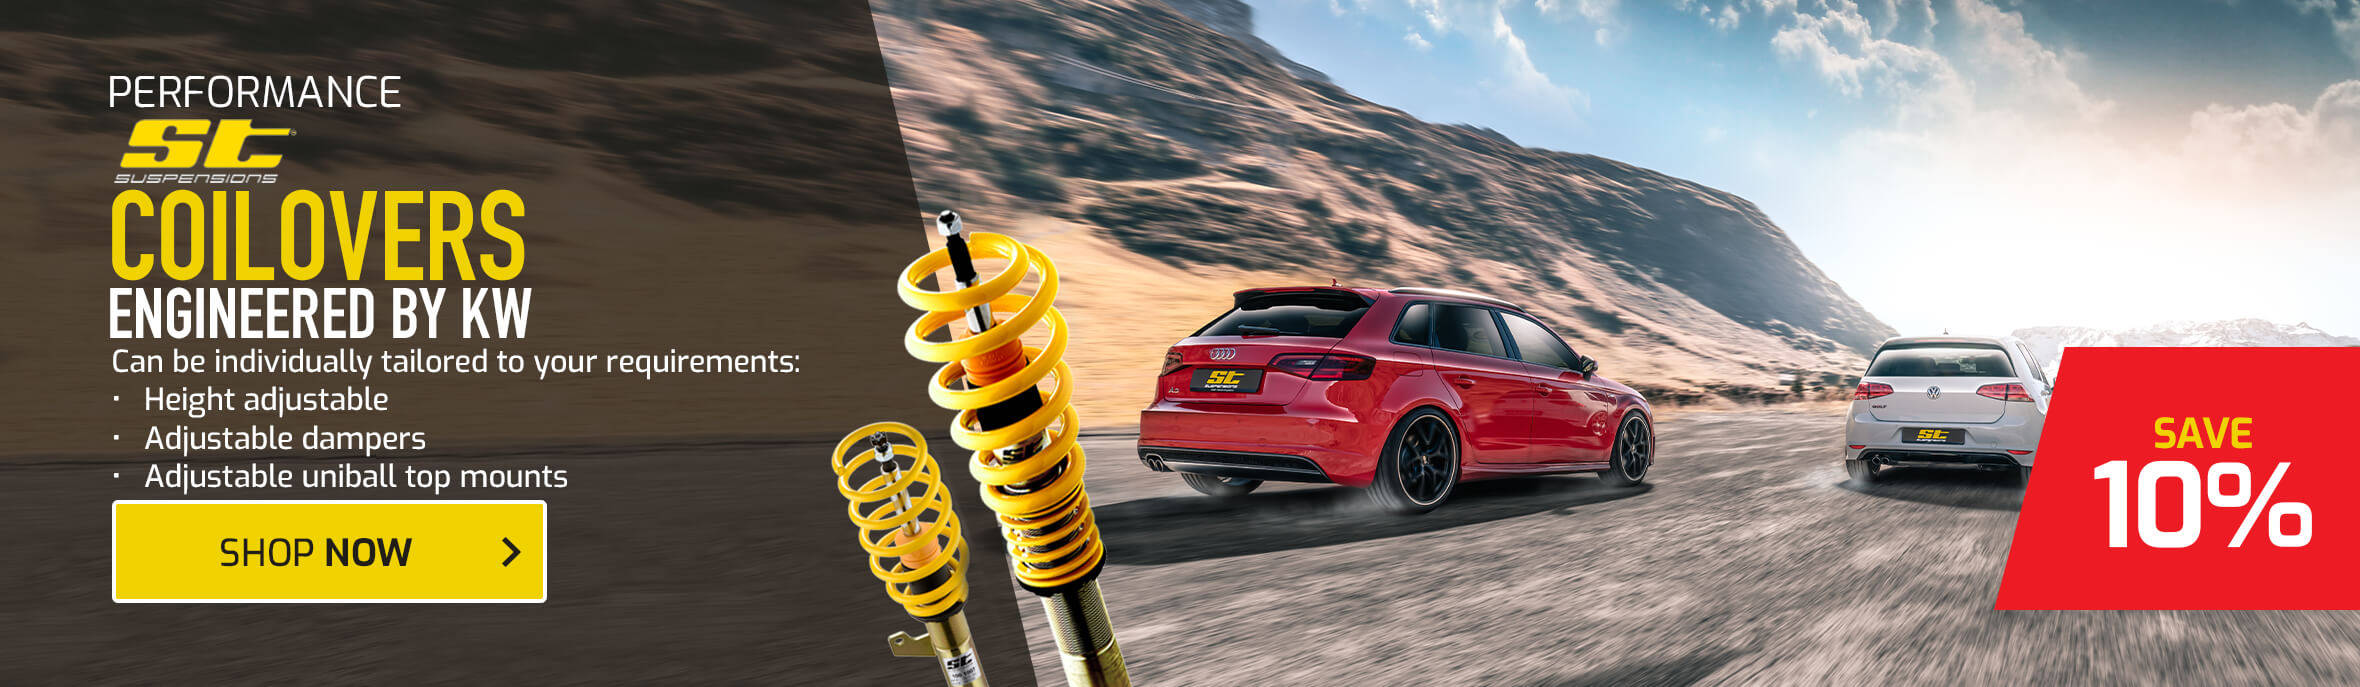 Save 10% on ST Suspension Coilovers